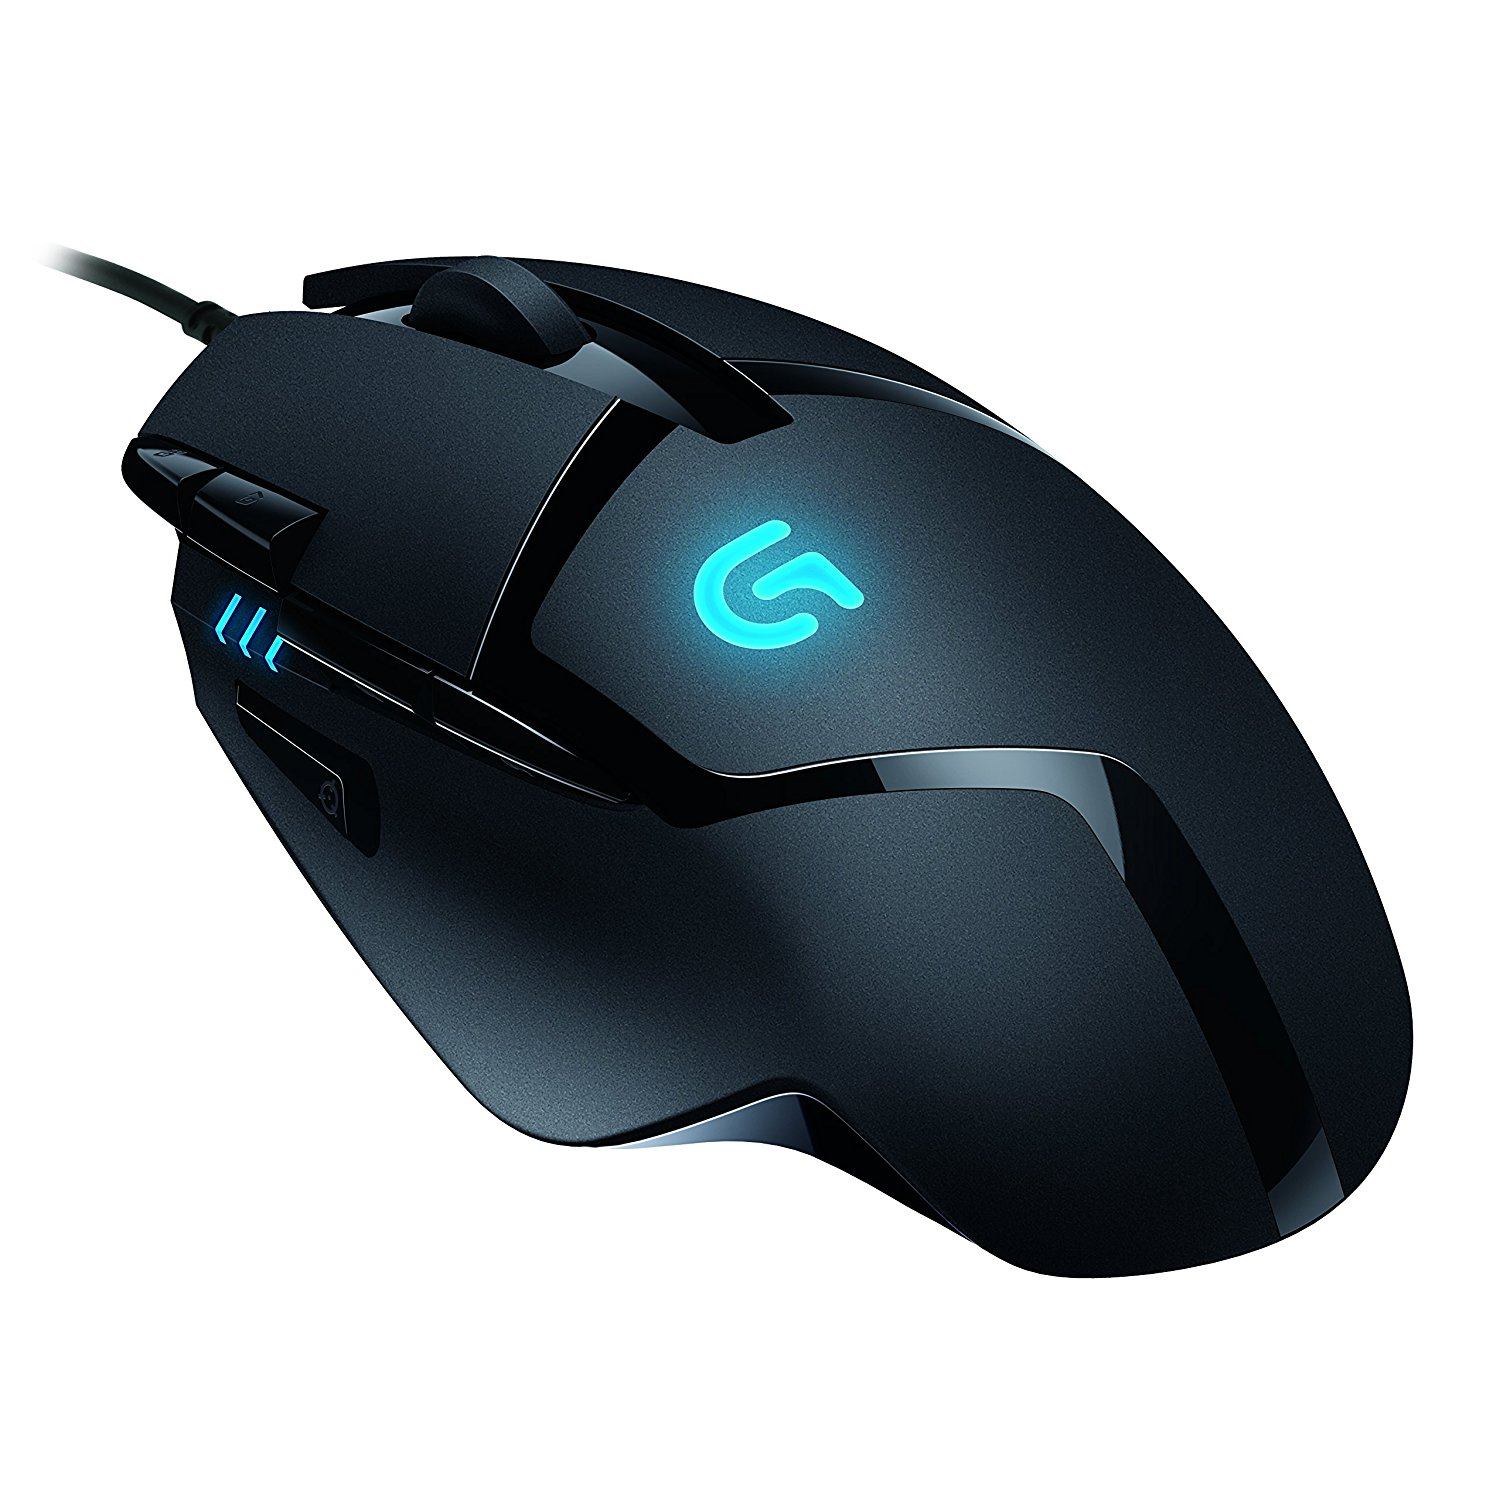 Logitech Gaming Maus G402 amazon